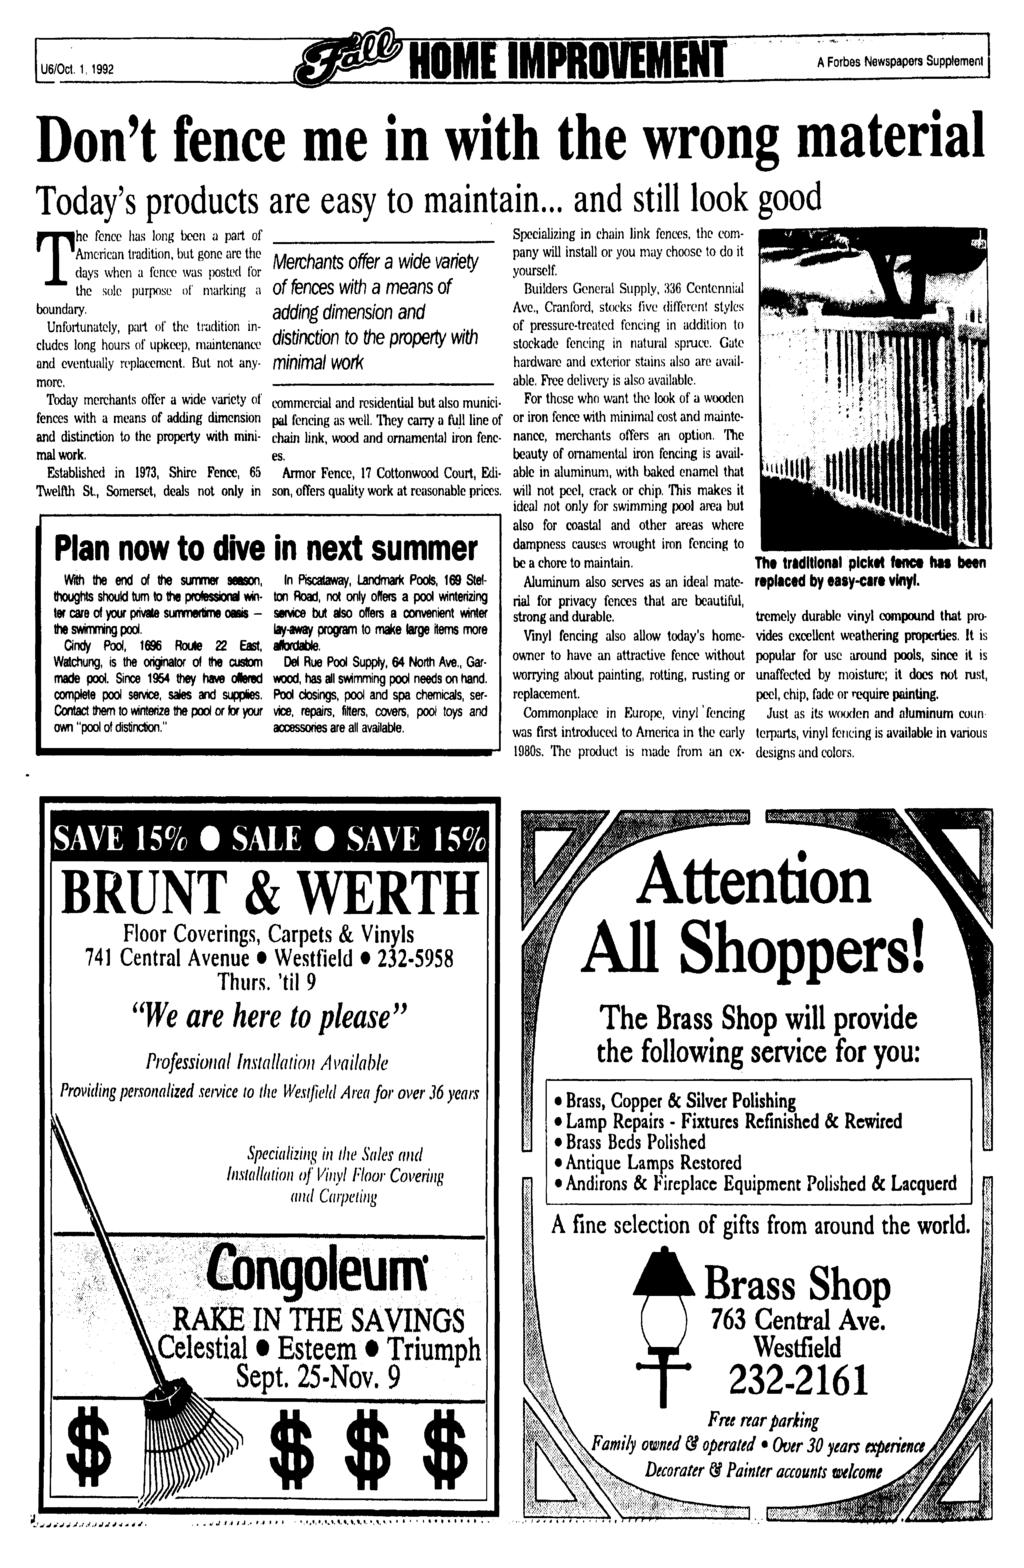 U6/0& 1,1992 HOME MPROUEMENT A Forbes Newspapers Supplement Don't fence me in with the wrong material Today's products are easy to maintain.